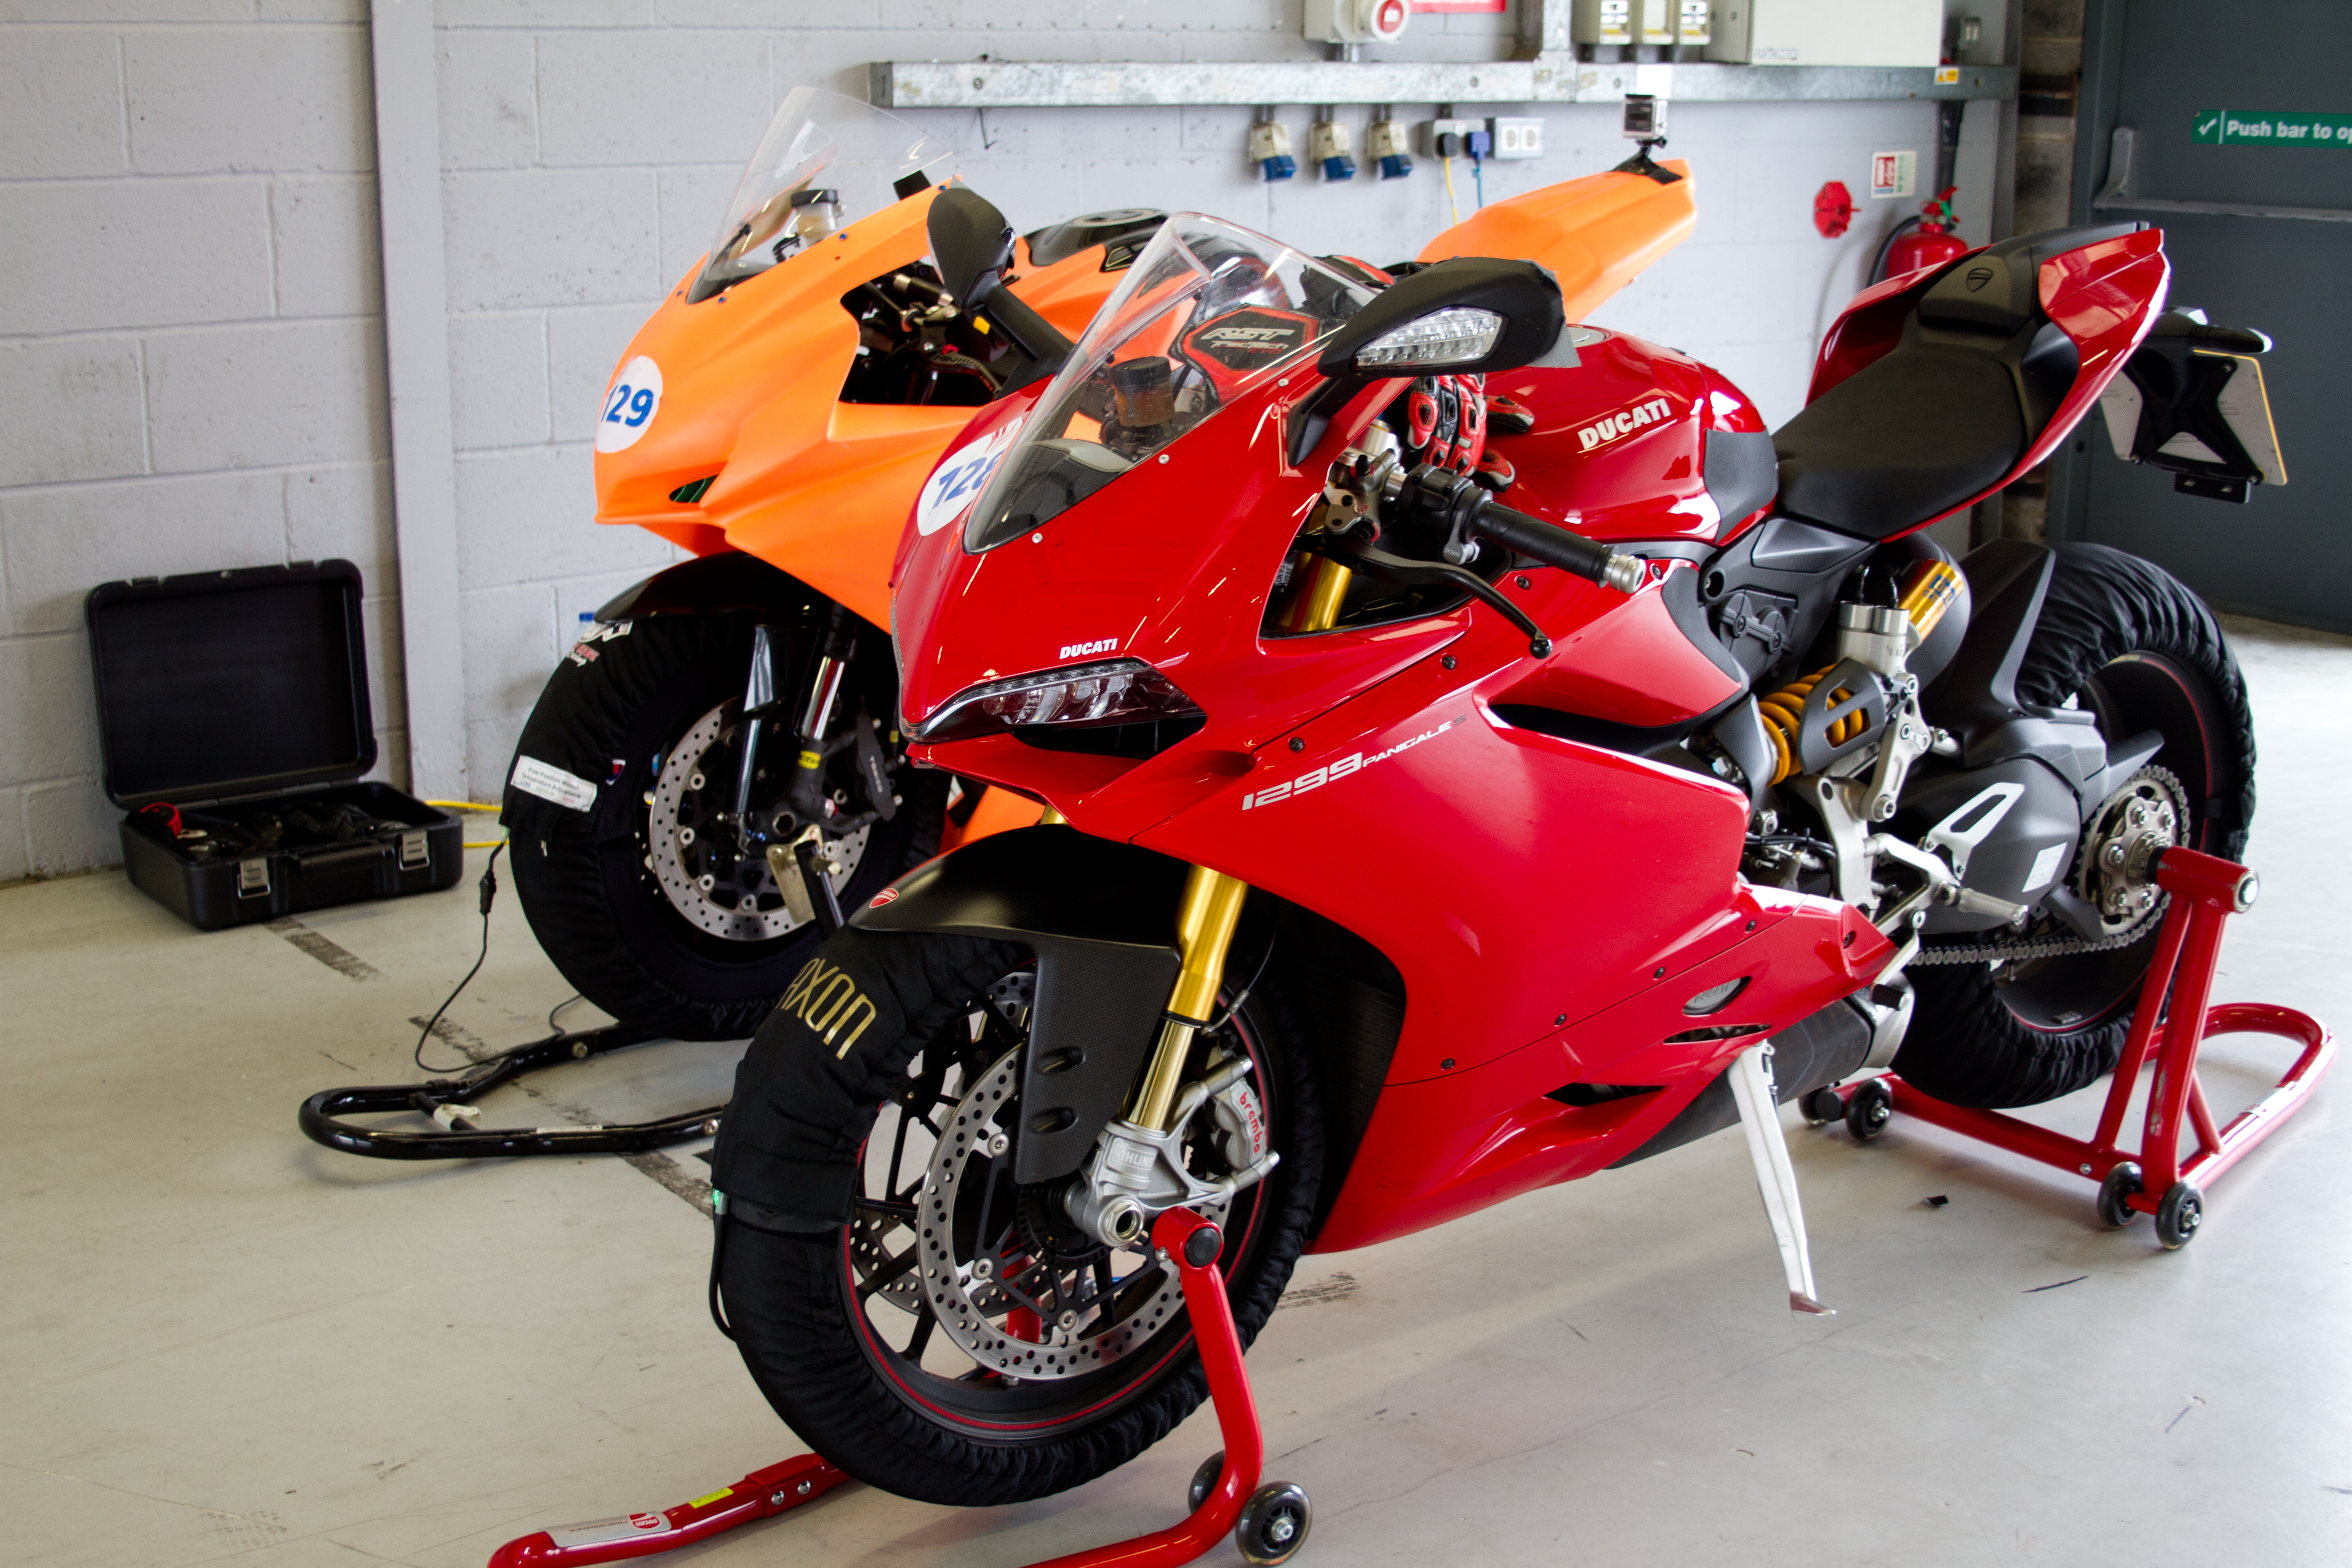 Tested: Silverstone track days